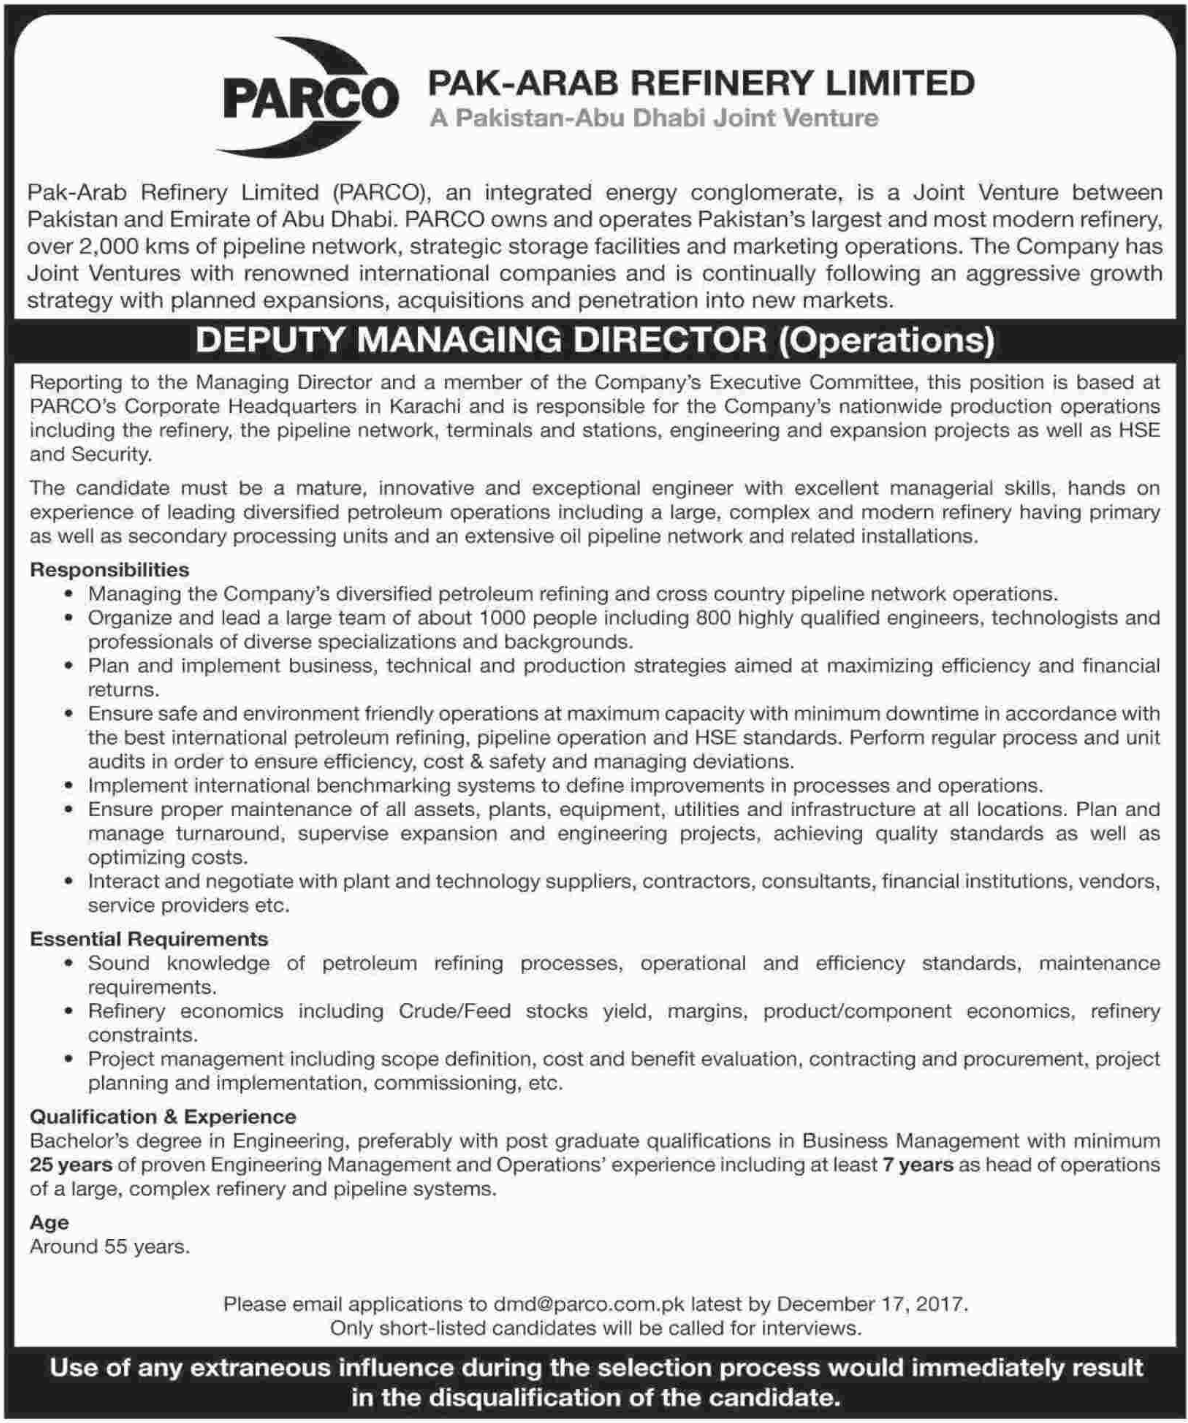 PARCO Pakistan Deputy Managing Director Jobs 2017